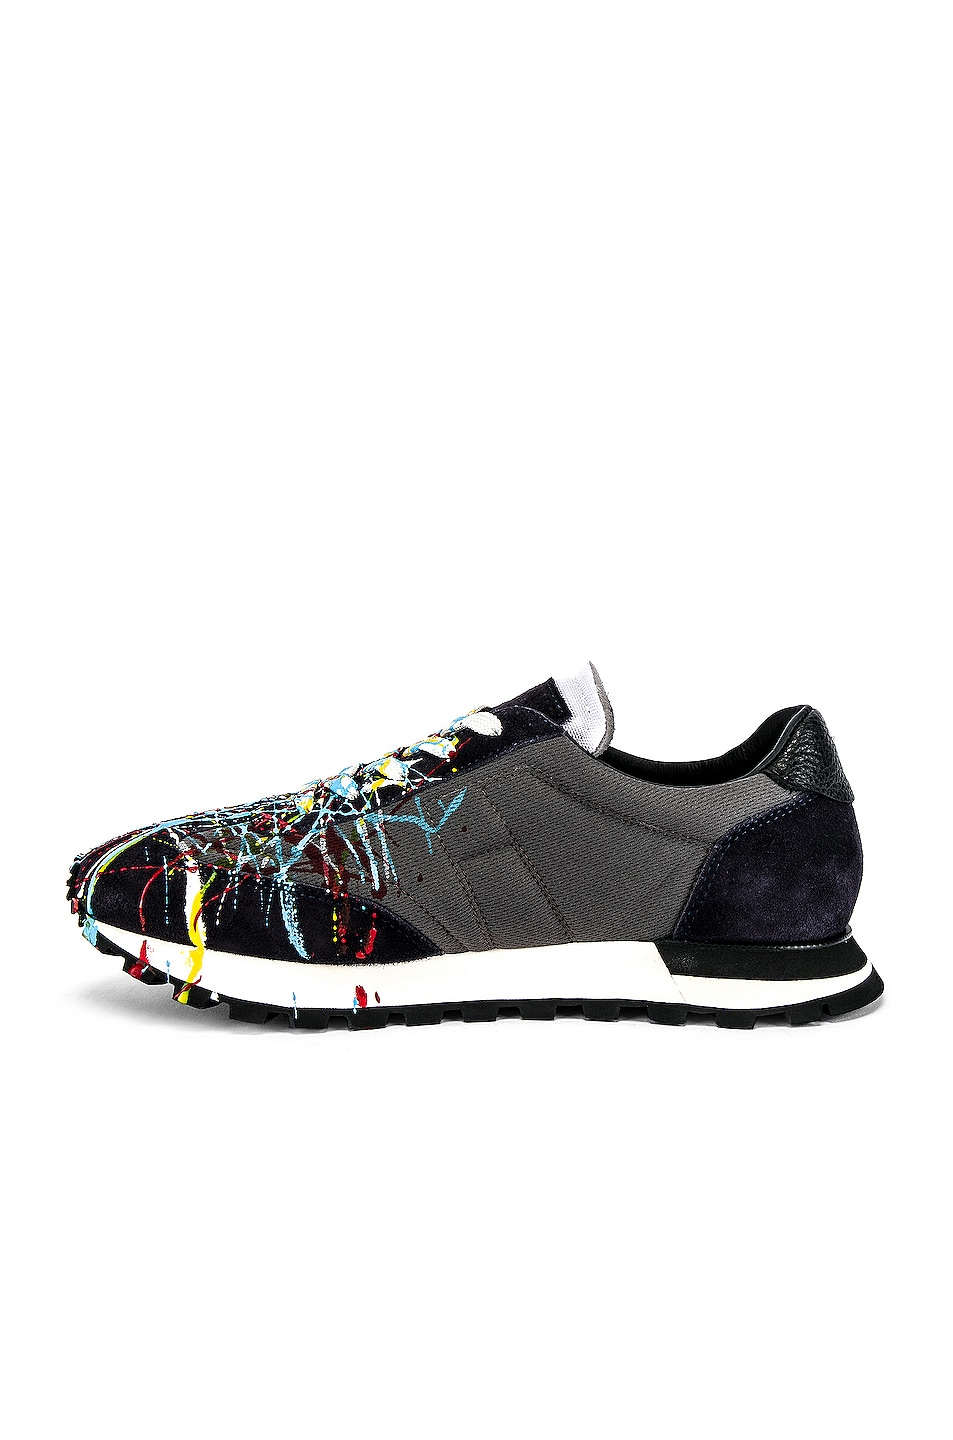 Image 5 of Maison Margiela Painted Runner In Multi in Multi